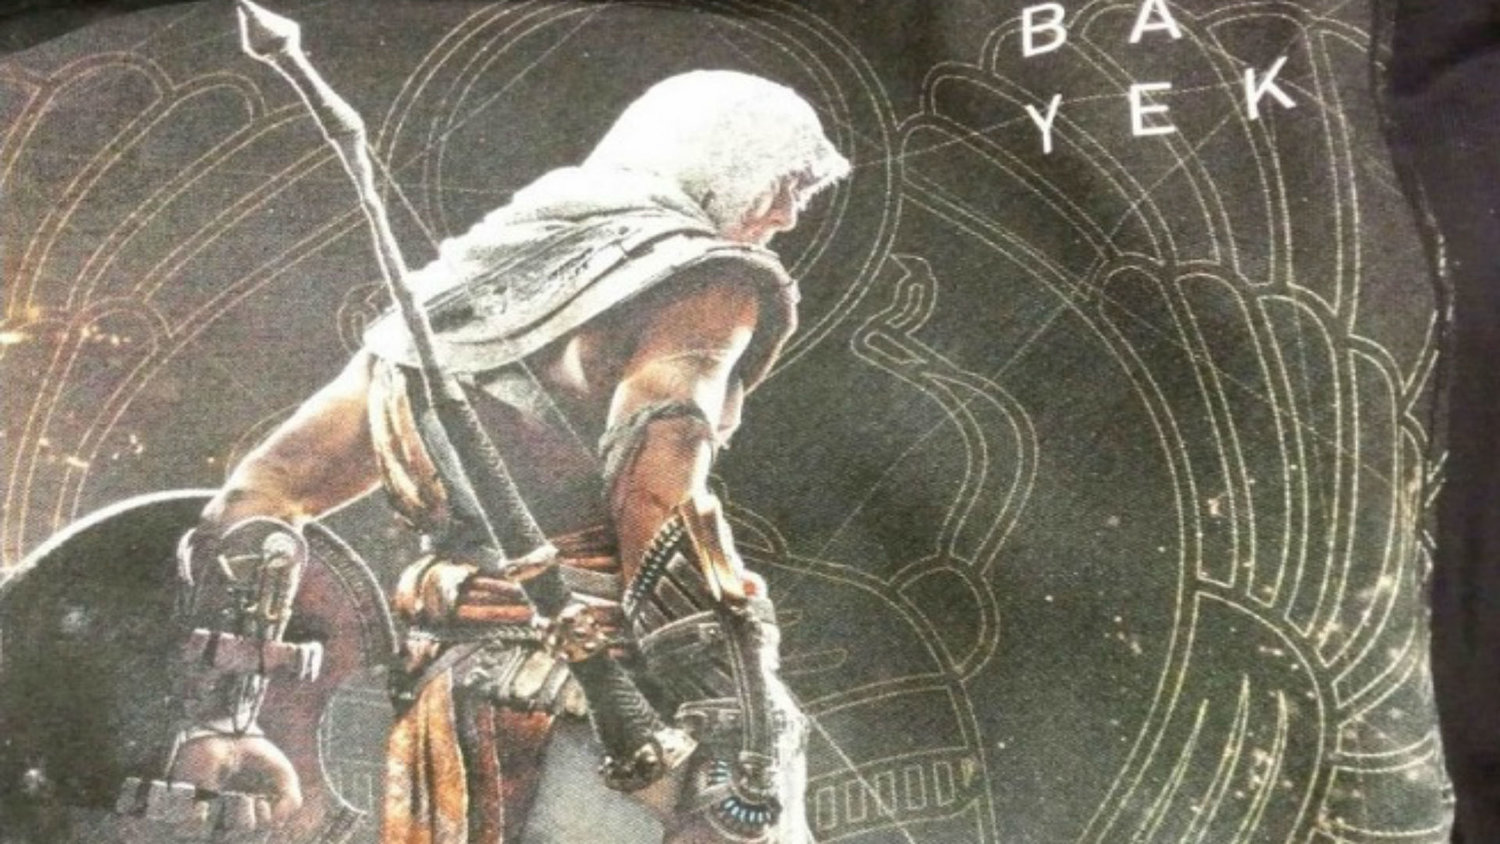 ASSASSIN'S CREED ORIGINS Protagonist and Logo Leaked — GameTyrant